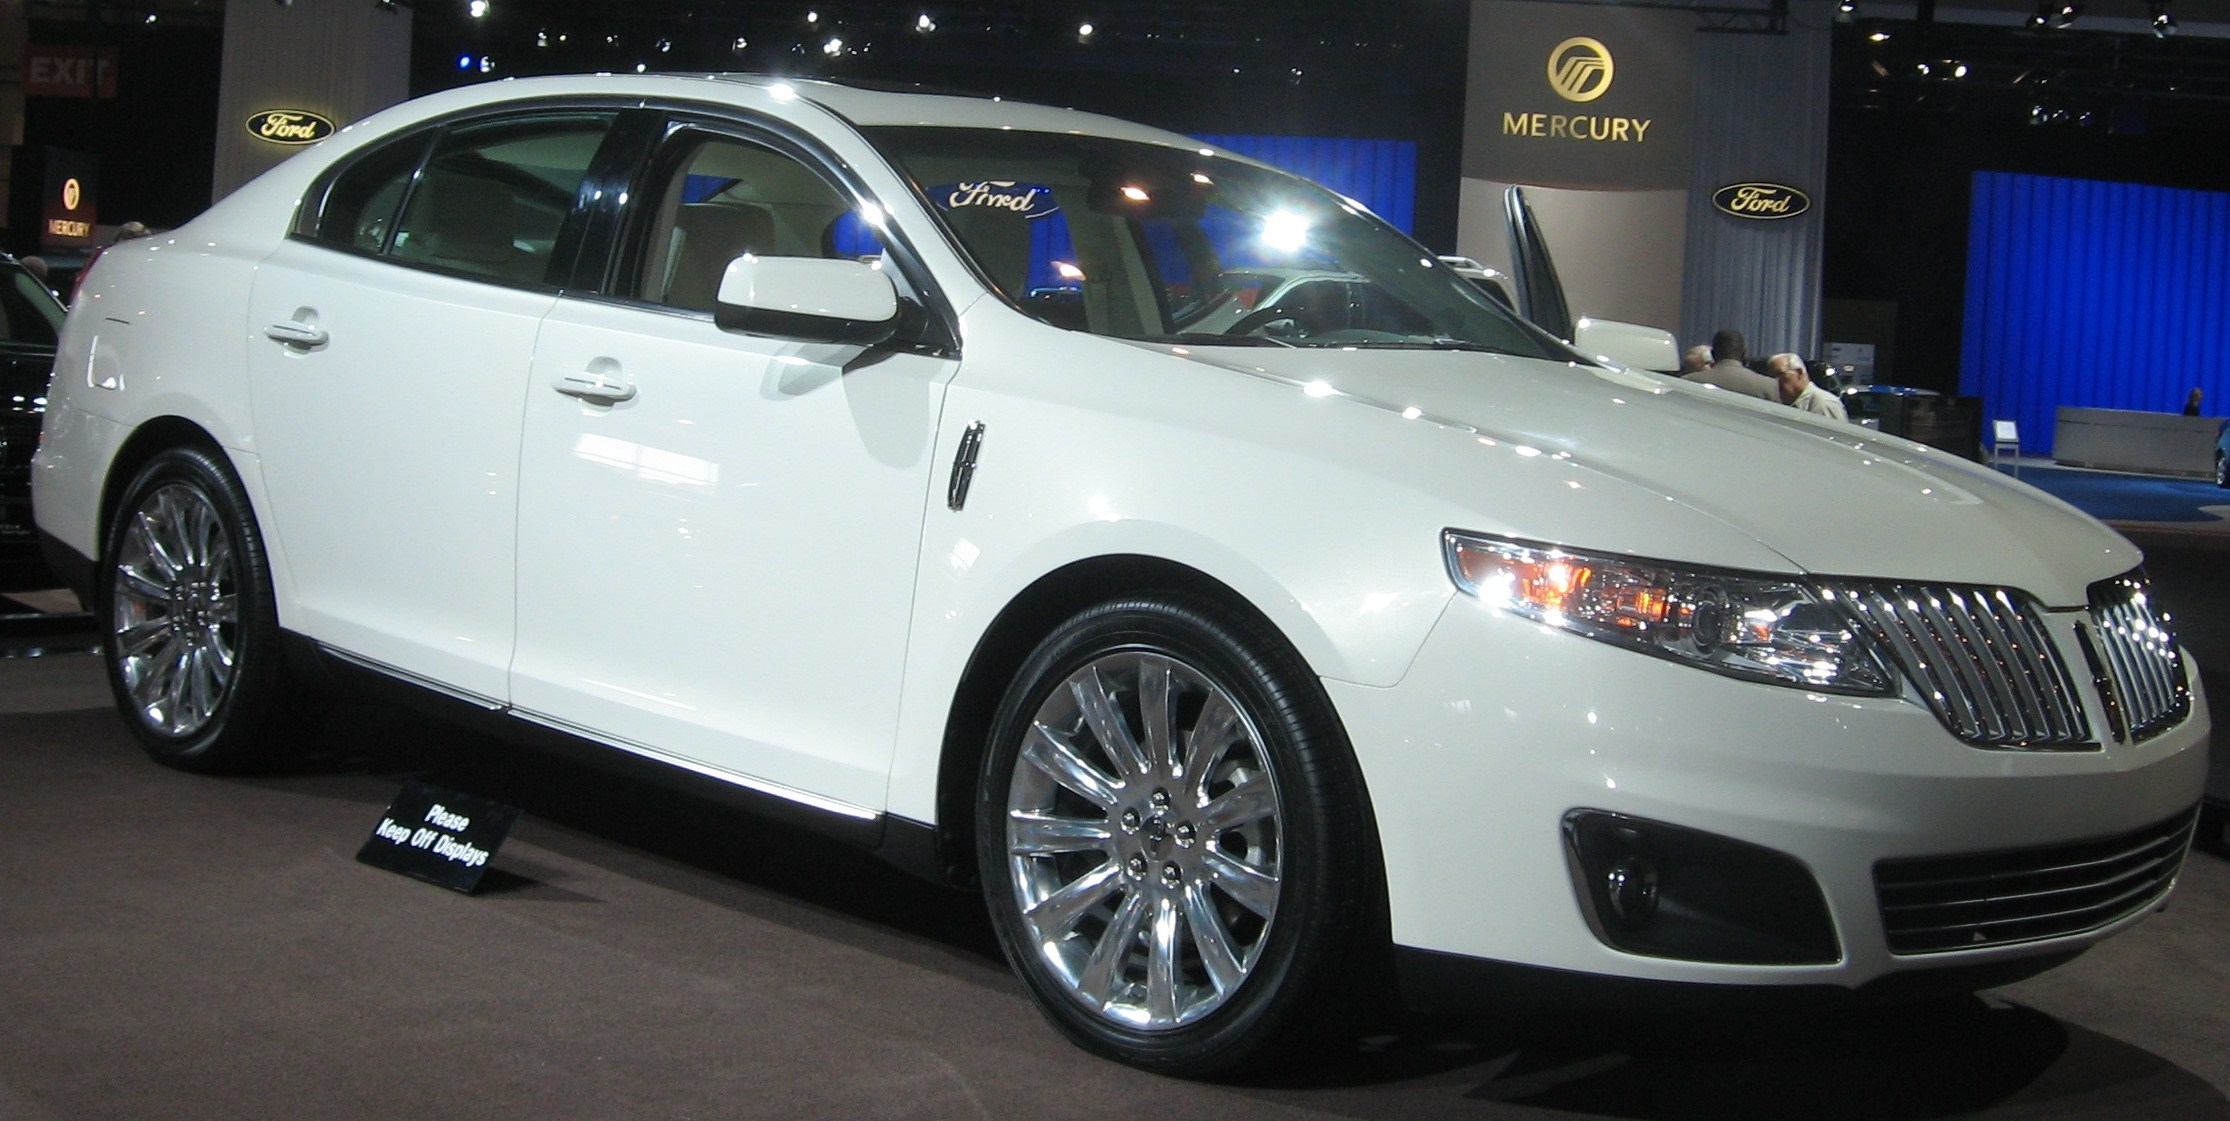 2016 Lincoln Mkt >> File:2009 Lincoln MKS DC.JPG - Wikimedia Commons